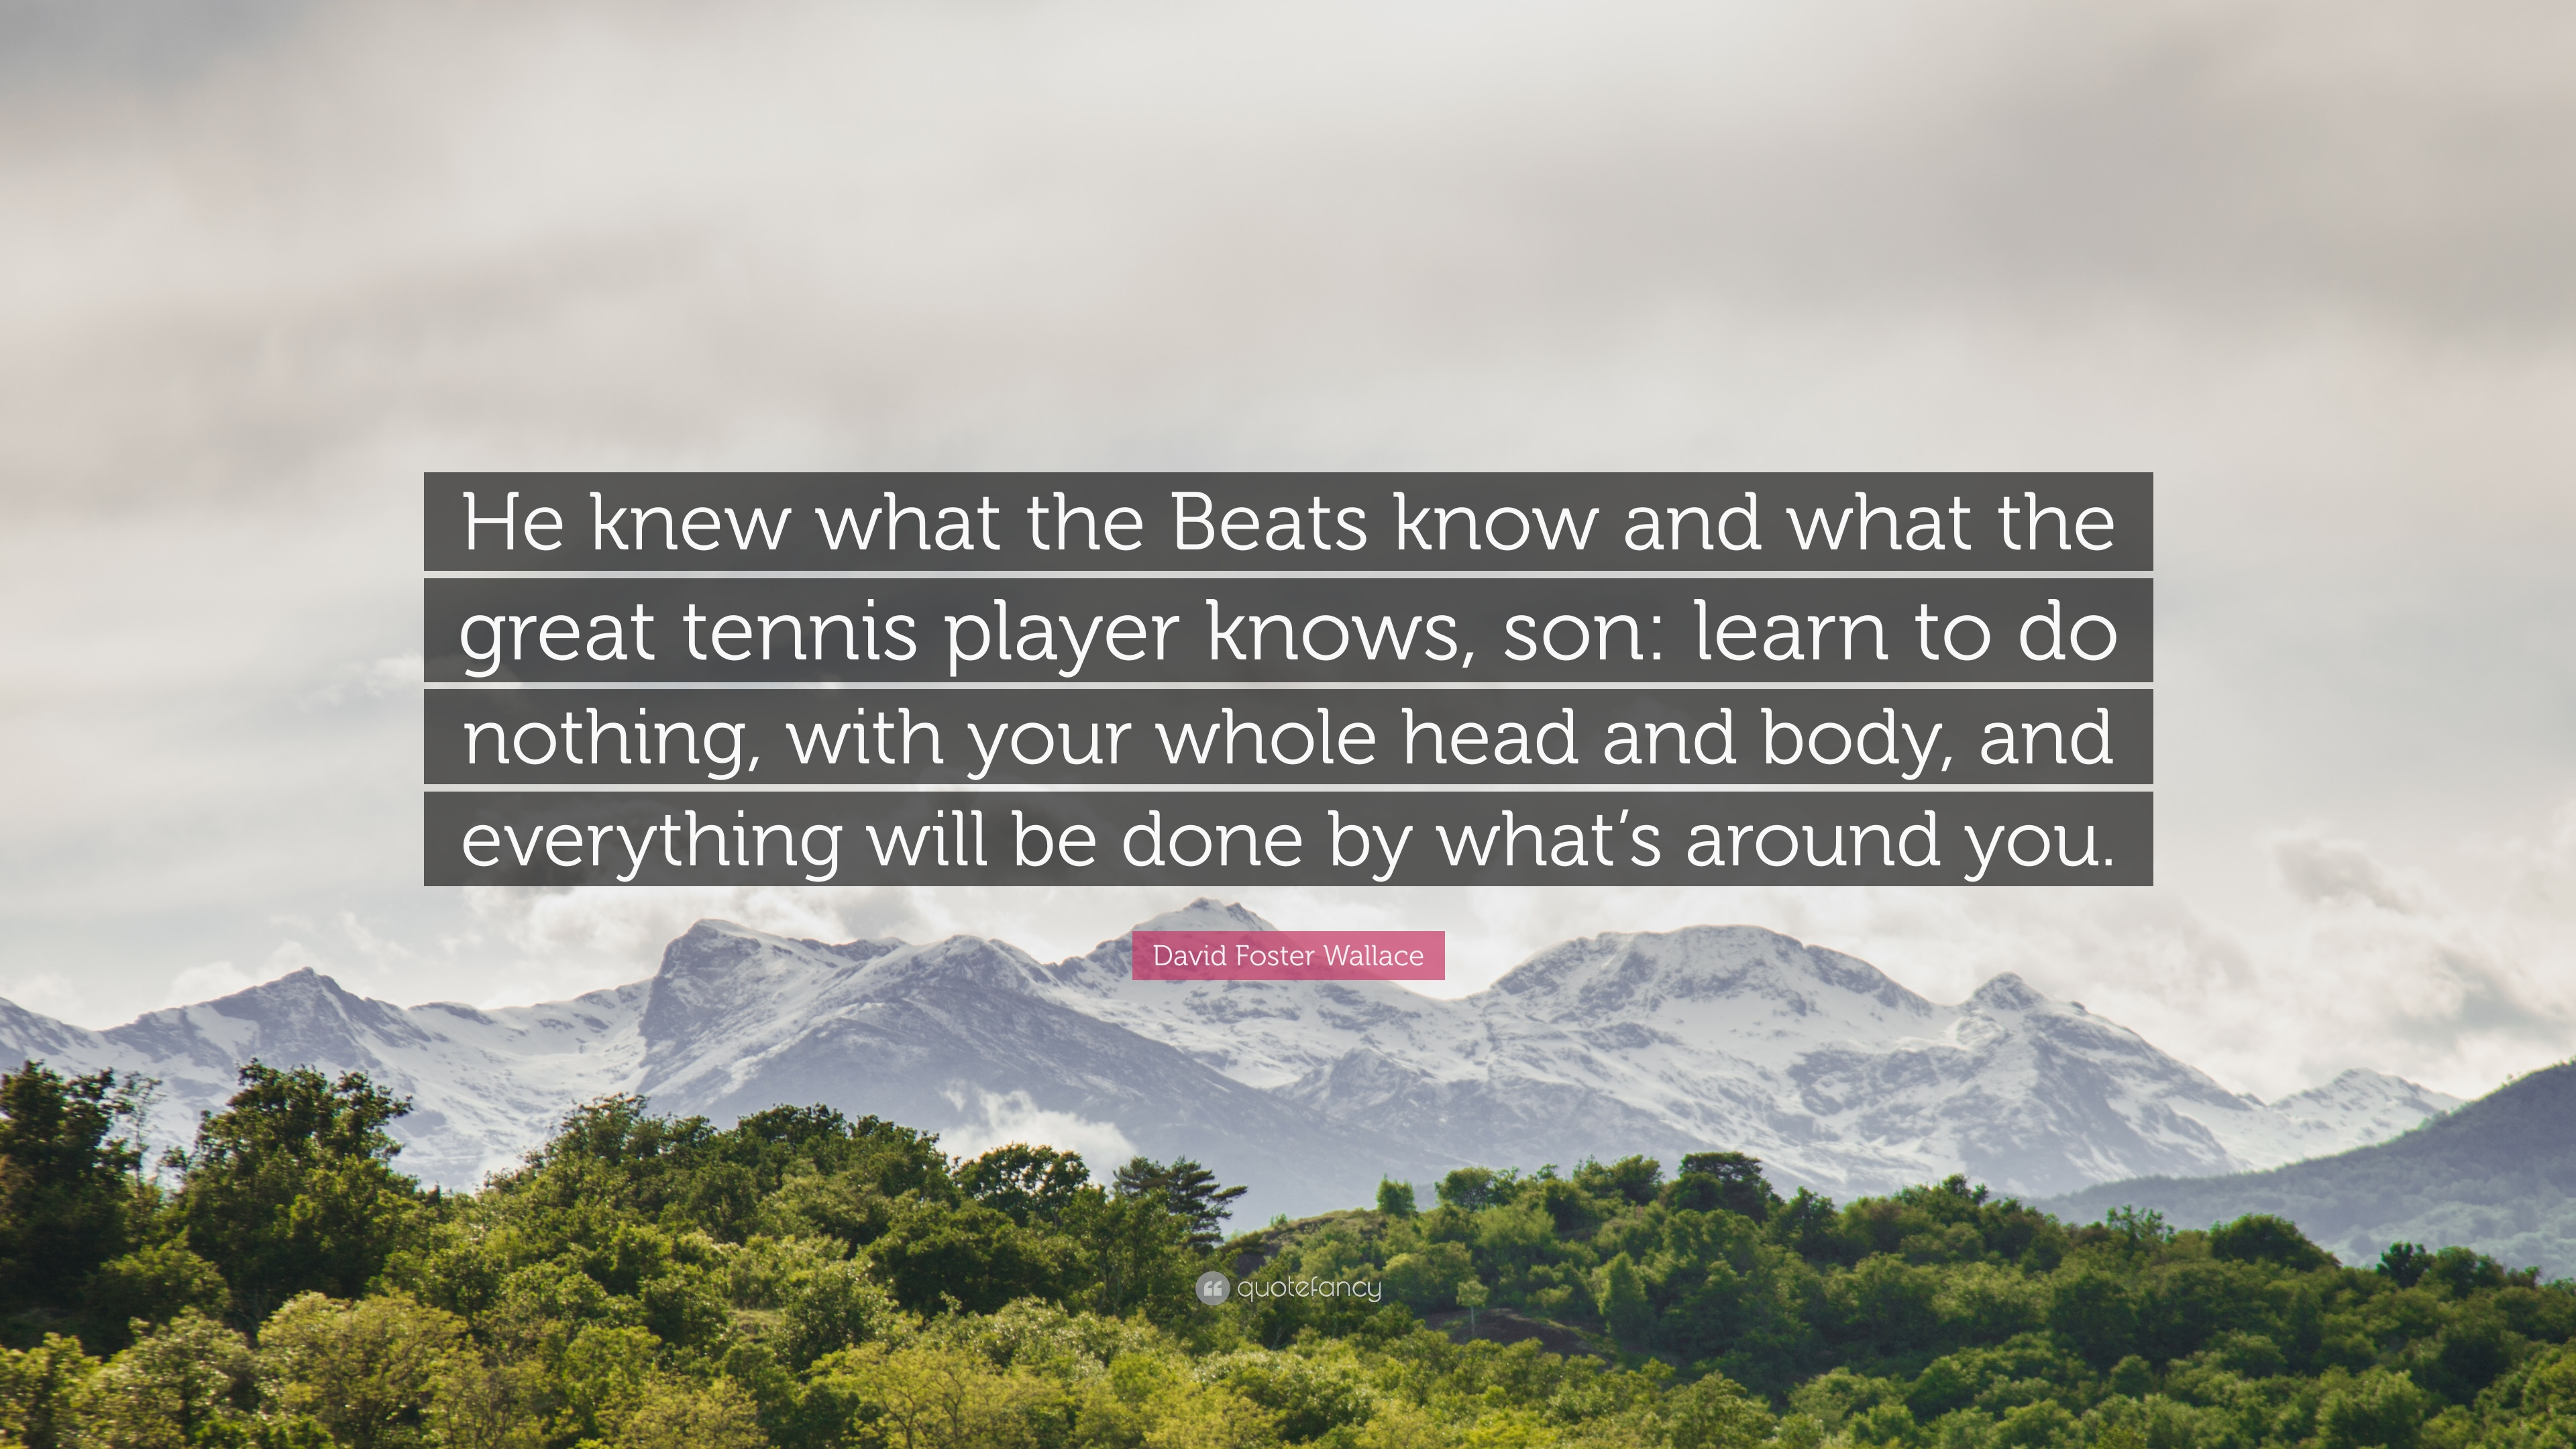 David Foster Wallace Quote He Knew What The Beats Know And What The Great Tennis Player Knows Son Learn To Do Nothing With Your Whole Head And B 7 Wallpapers Quotefancy